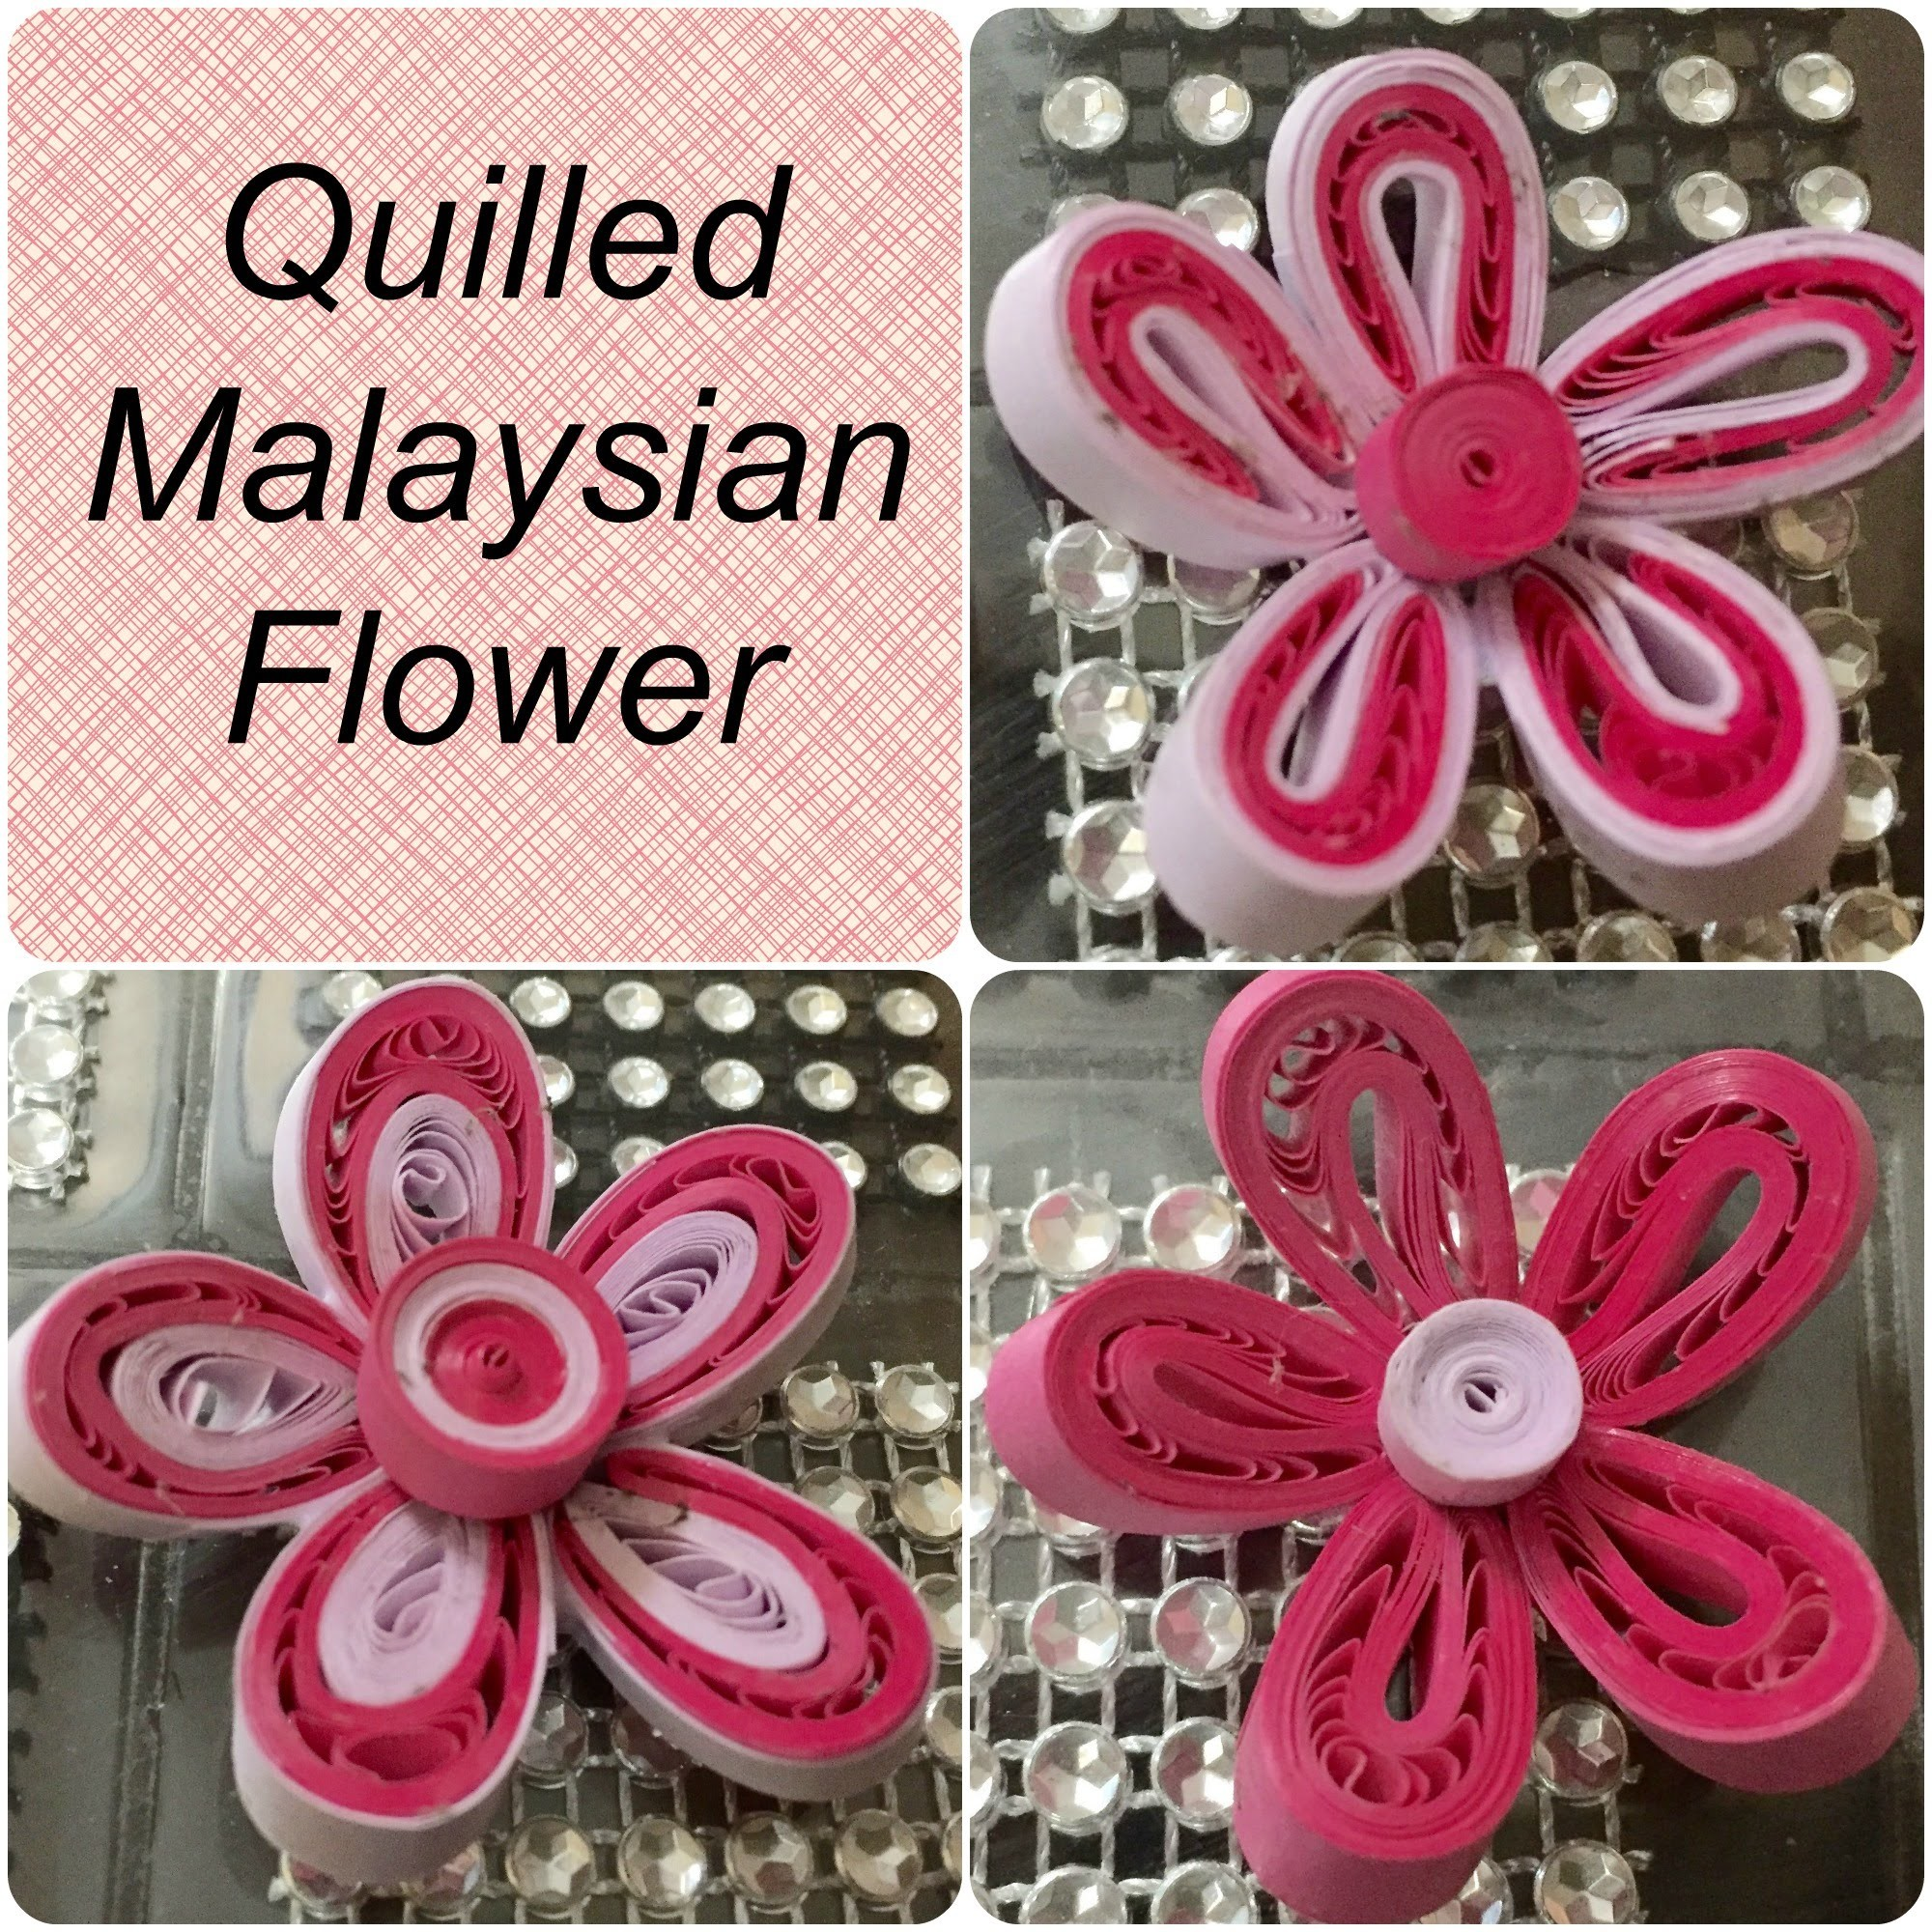 Quilling Malaysian Flower tutorial - 3 Different Variations #8